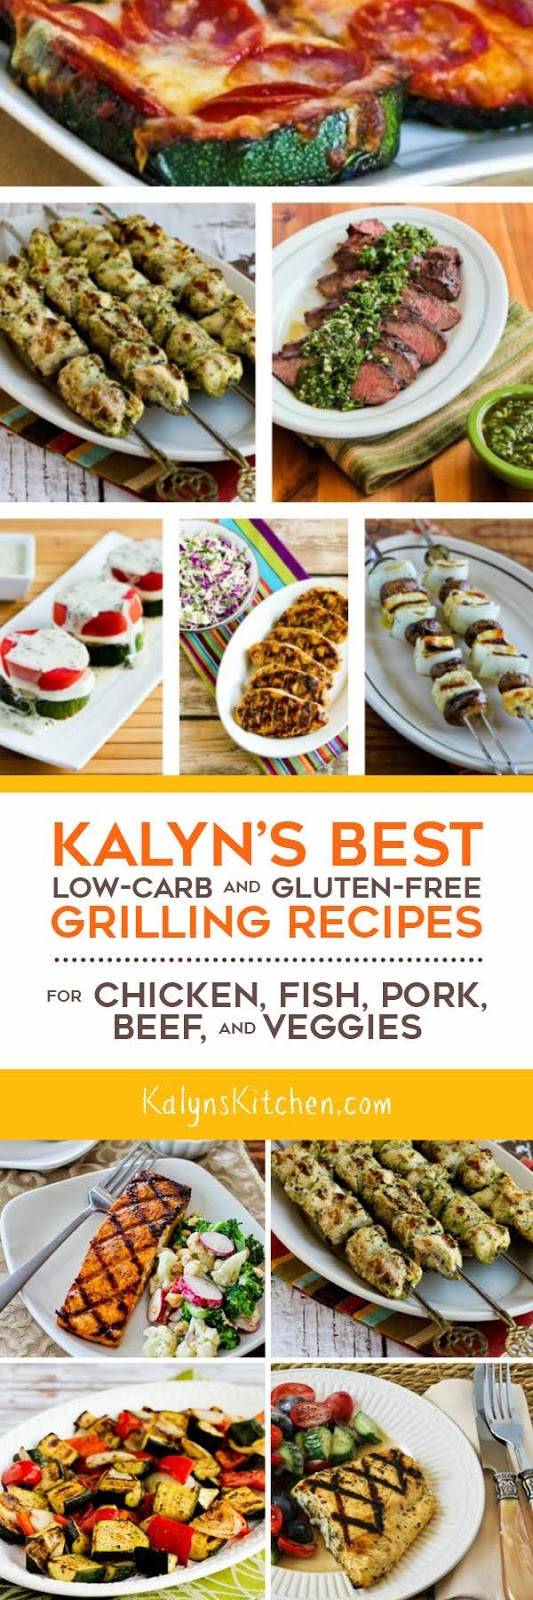 Kalyn 39 s best low carb grilling recipes for chicken fish for Low carb fish recipes